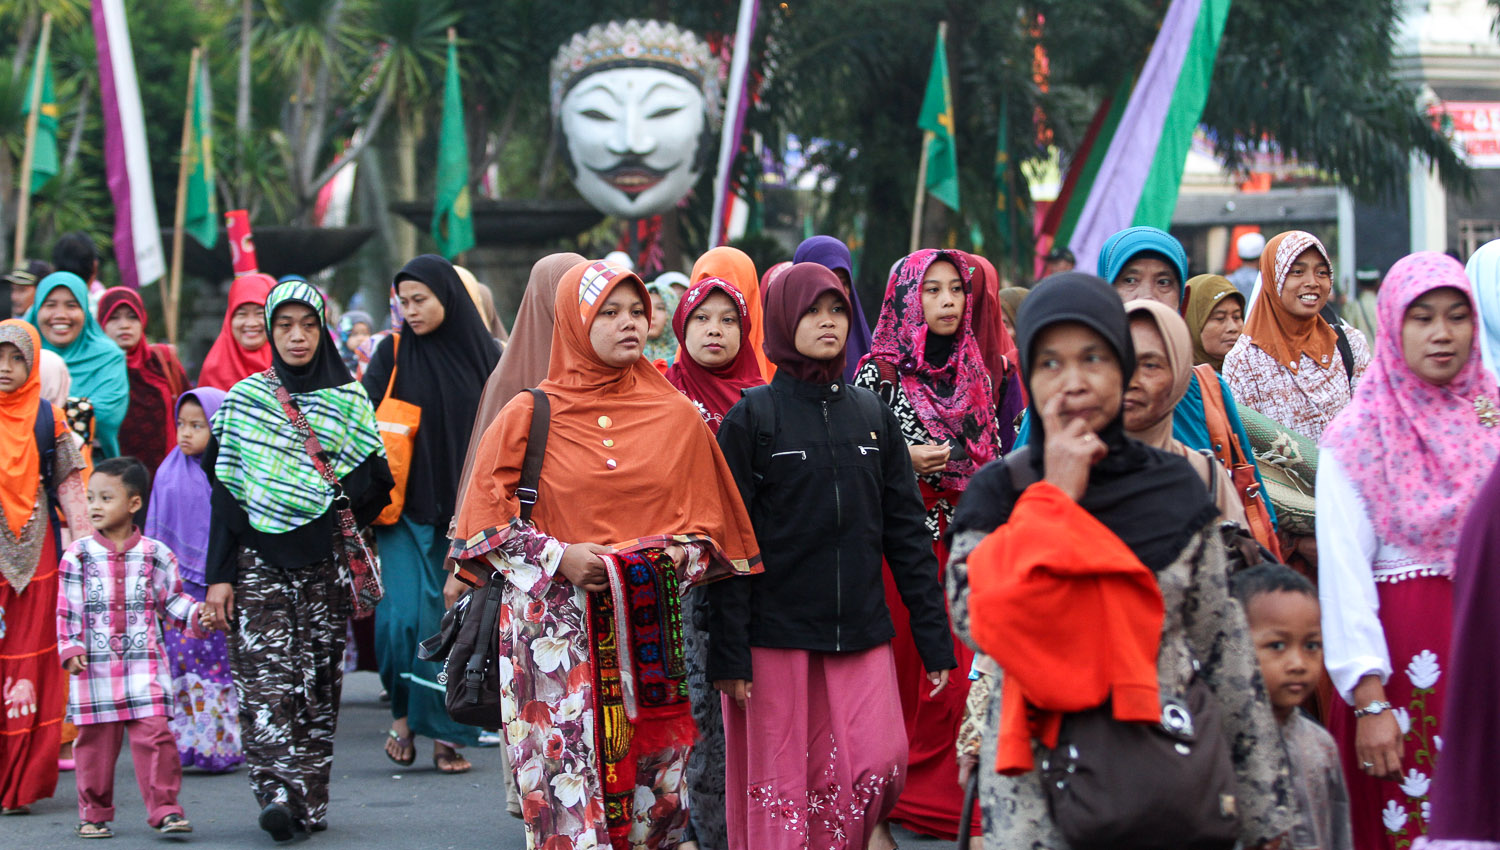 Muslims walking to a prayer gathering for Eid in Indonesia. Image:  ©    Suryo    | Dreamstime